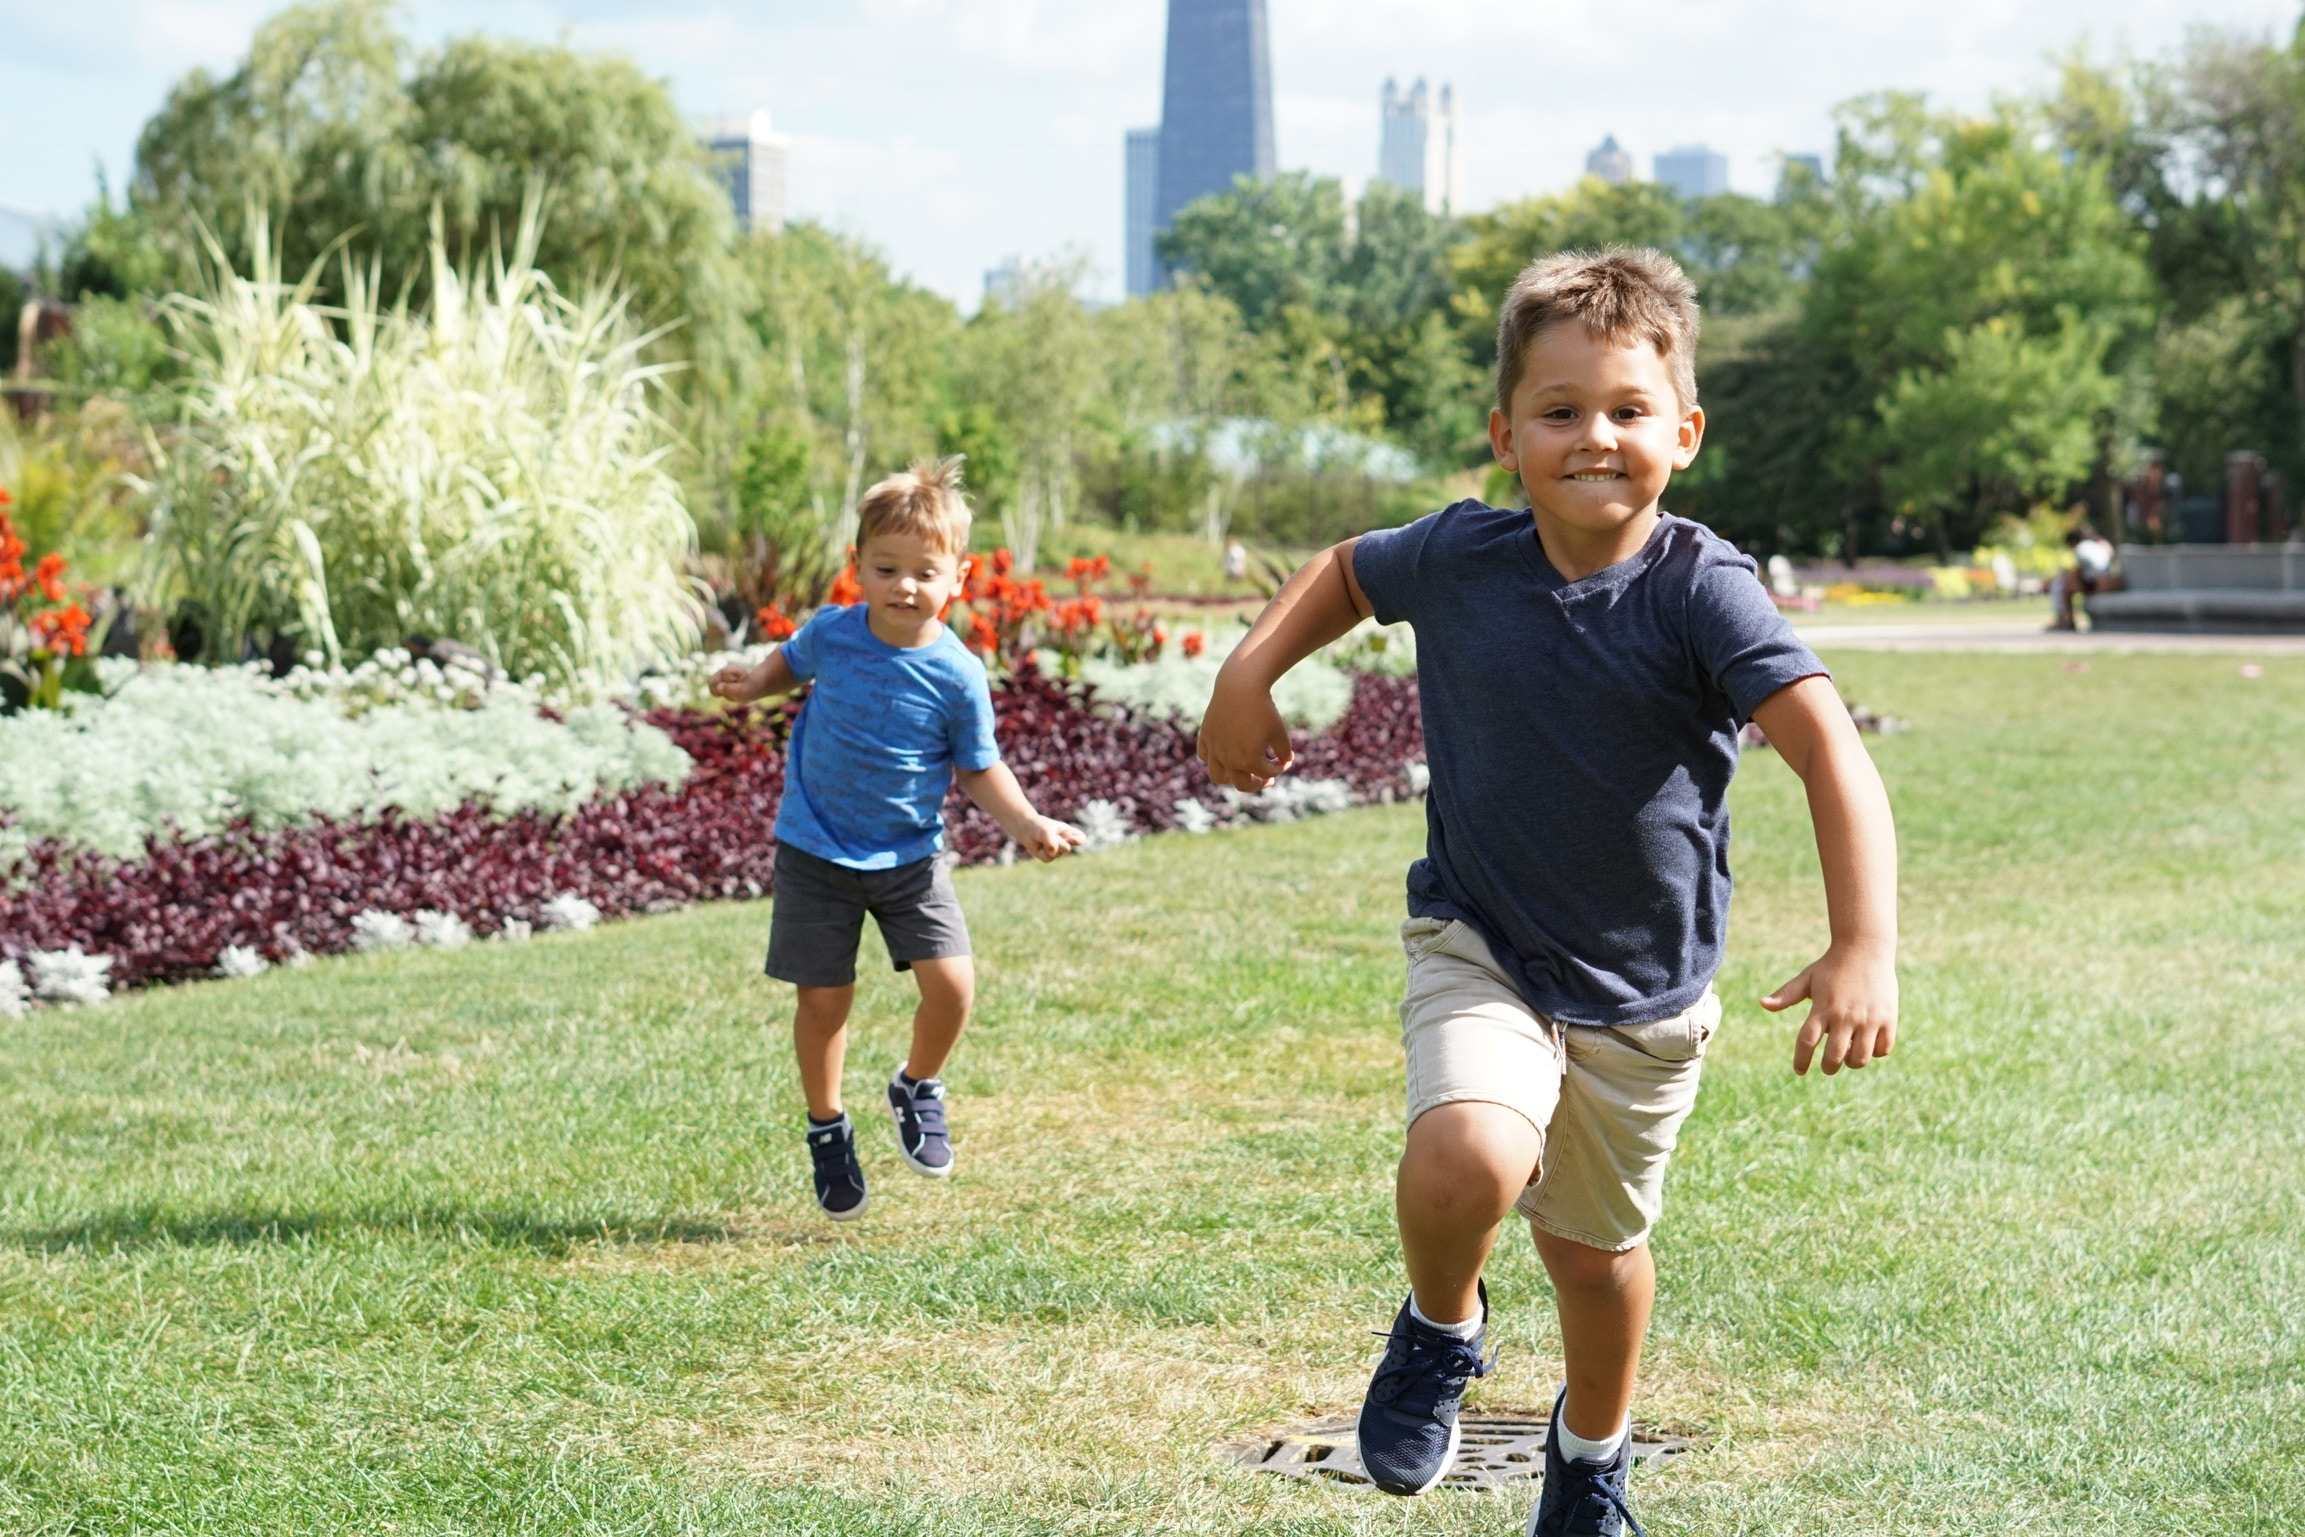 Fitness for family ~ 2 boys playing tag